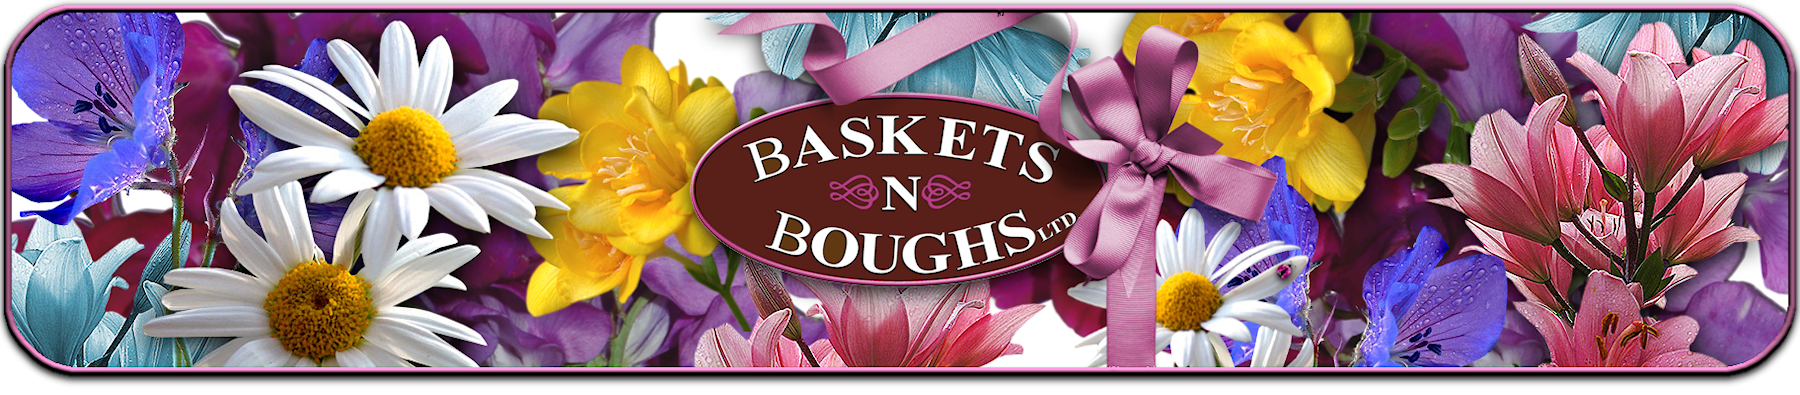 Baskets n Boughs Coupons